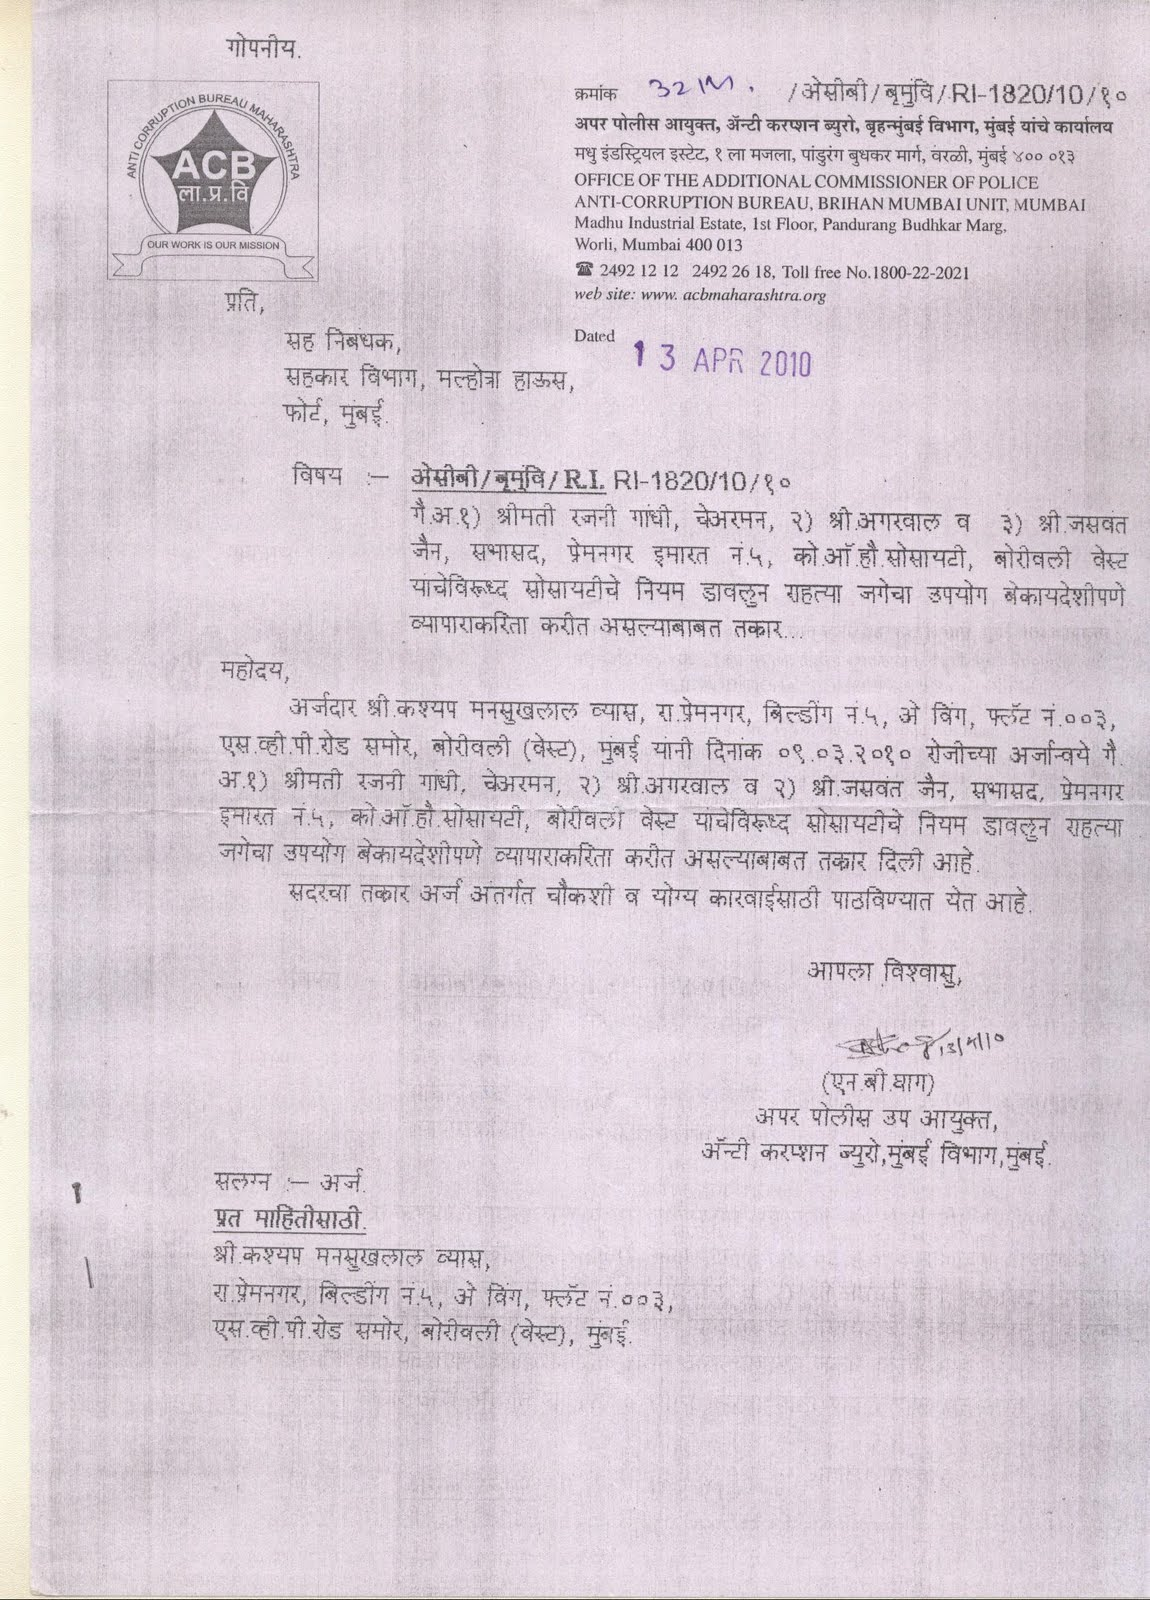 New horizon of corruption at mumbai india may 2010 letter petitionpublic interest litigation 2 honorable president of india to evoke the powers provided under article 143 of the constitution spiritdancerdesigns Image collections